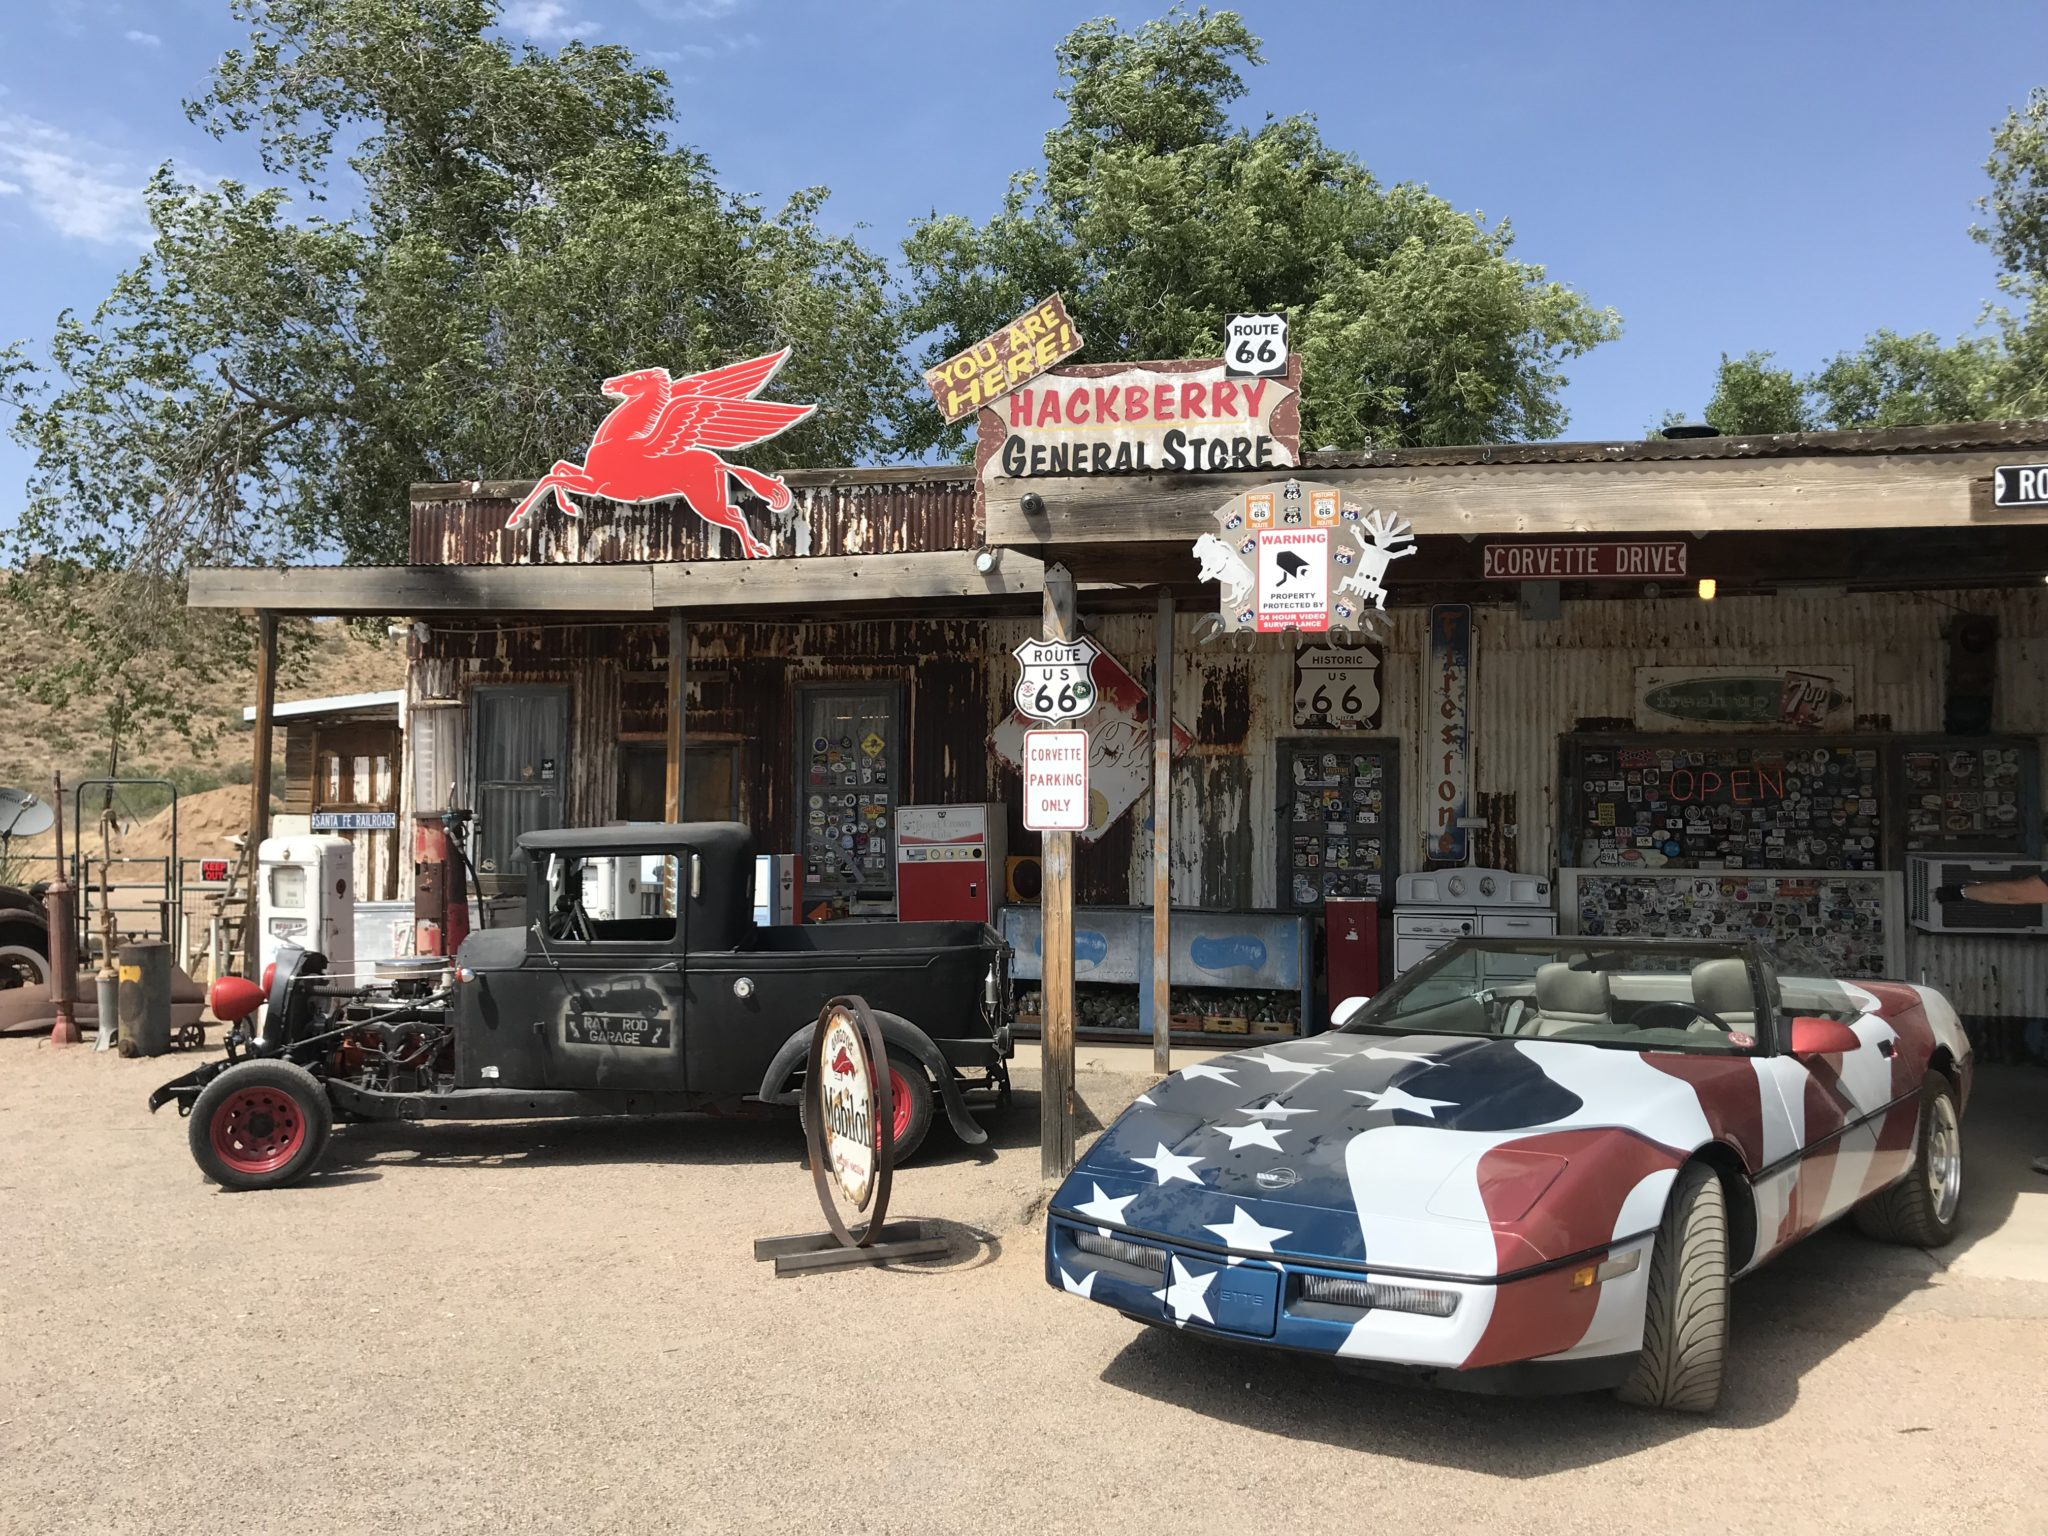 route-66-road-trip-hackberry-general-store